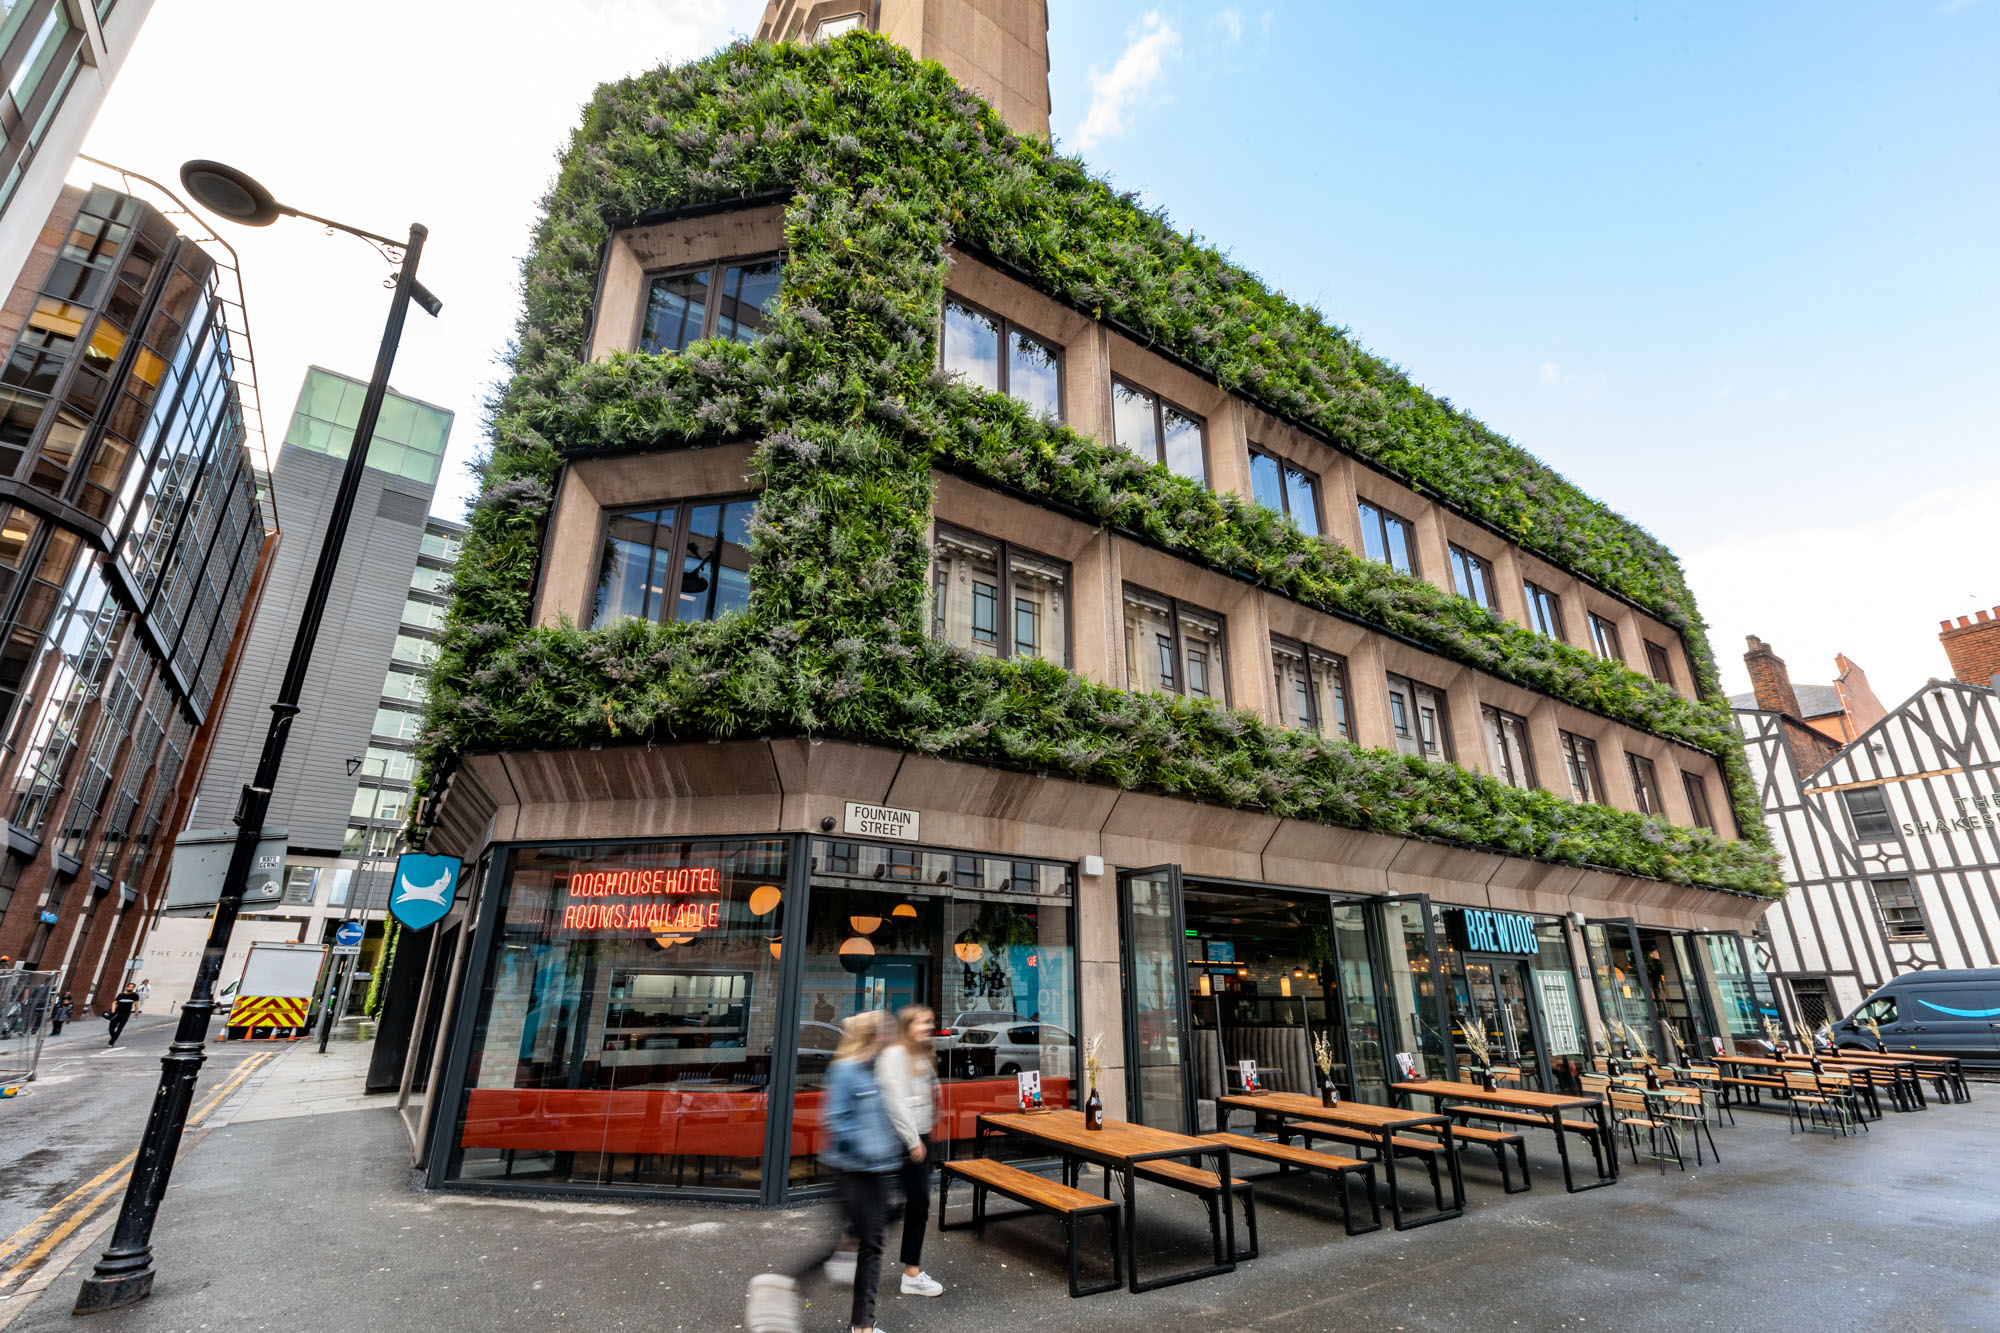 Outside DogHouse in Manchester: BrewDog's craft beer hotel launches in Manchester